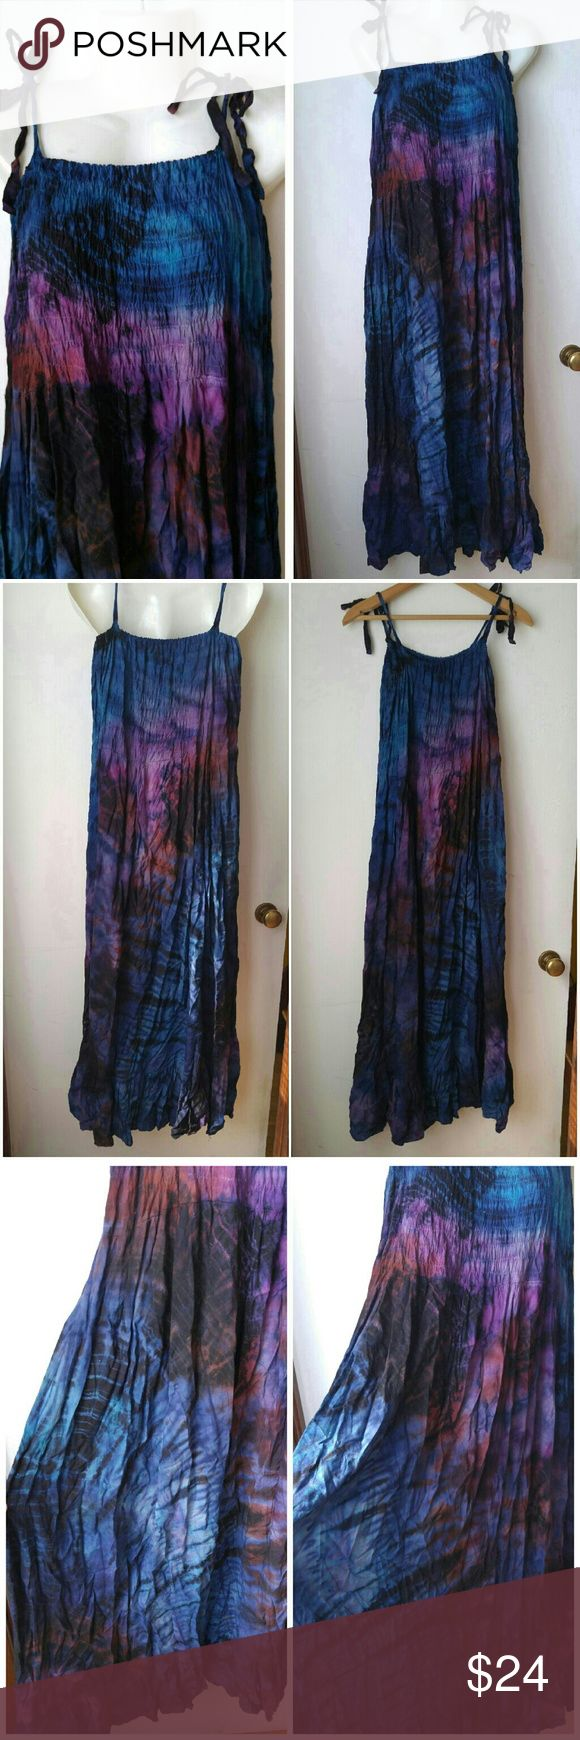 Galaxy tie dye dress boho blue osfm festival Gorgeous dress with vivid tie dye in shades of blue and violet looks like the night sky or outer space! Tie straps at shoulders allow to adjust for a perfect fit. Smocked bust section is stretchy and can fit a wide range of bust sizes. The skirt is floaty and free with a ruffly hem. In great condition with no issues, may have a few tiny threads loose and slightly wrinkled from storage.  More info is below in the comments! POSHCGALAXY888 Dresses…